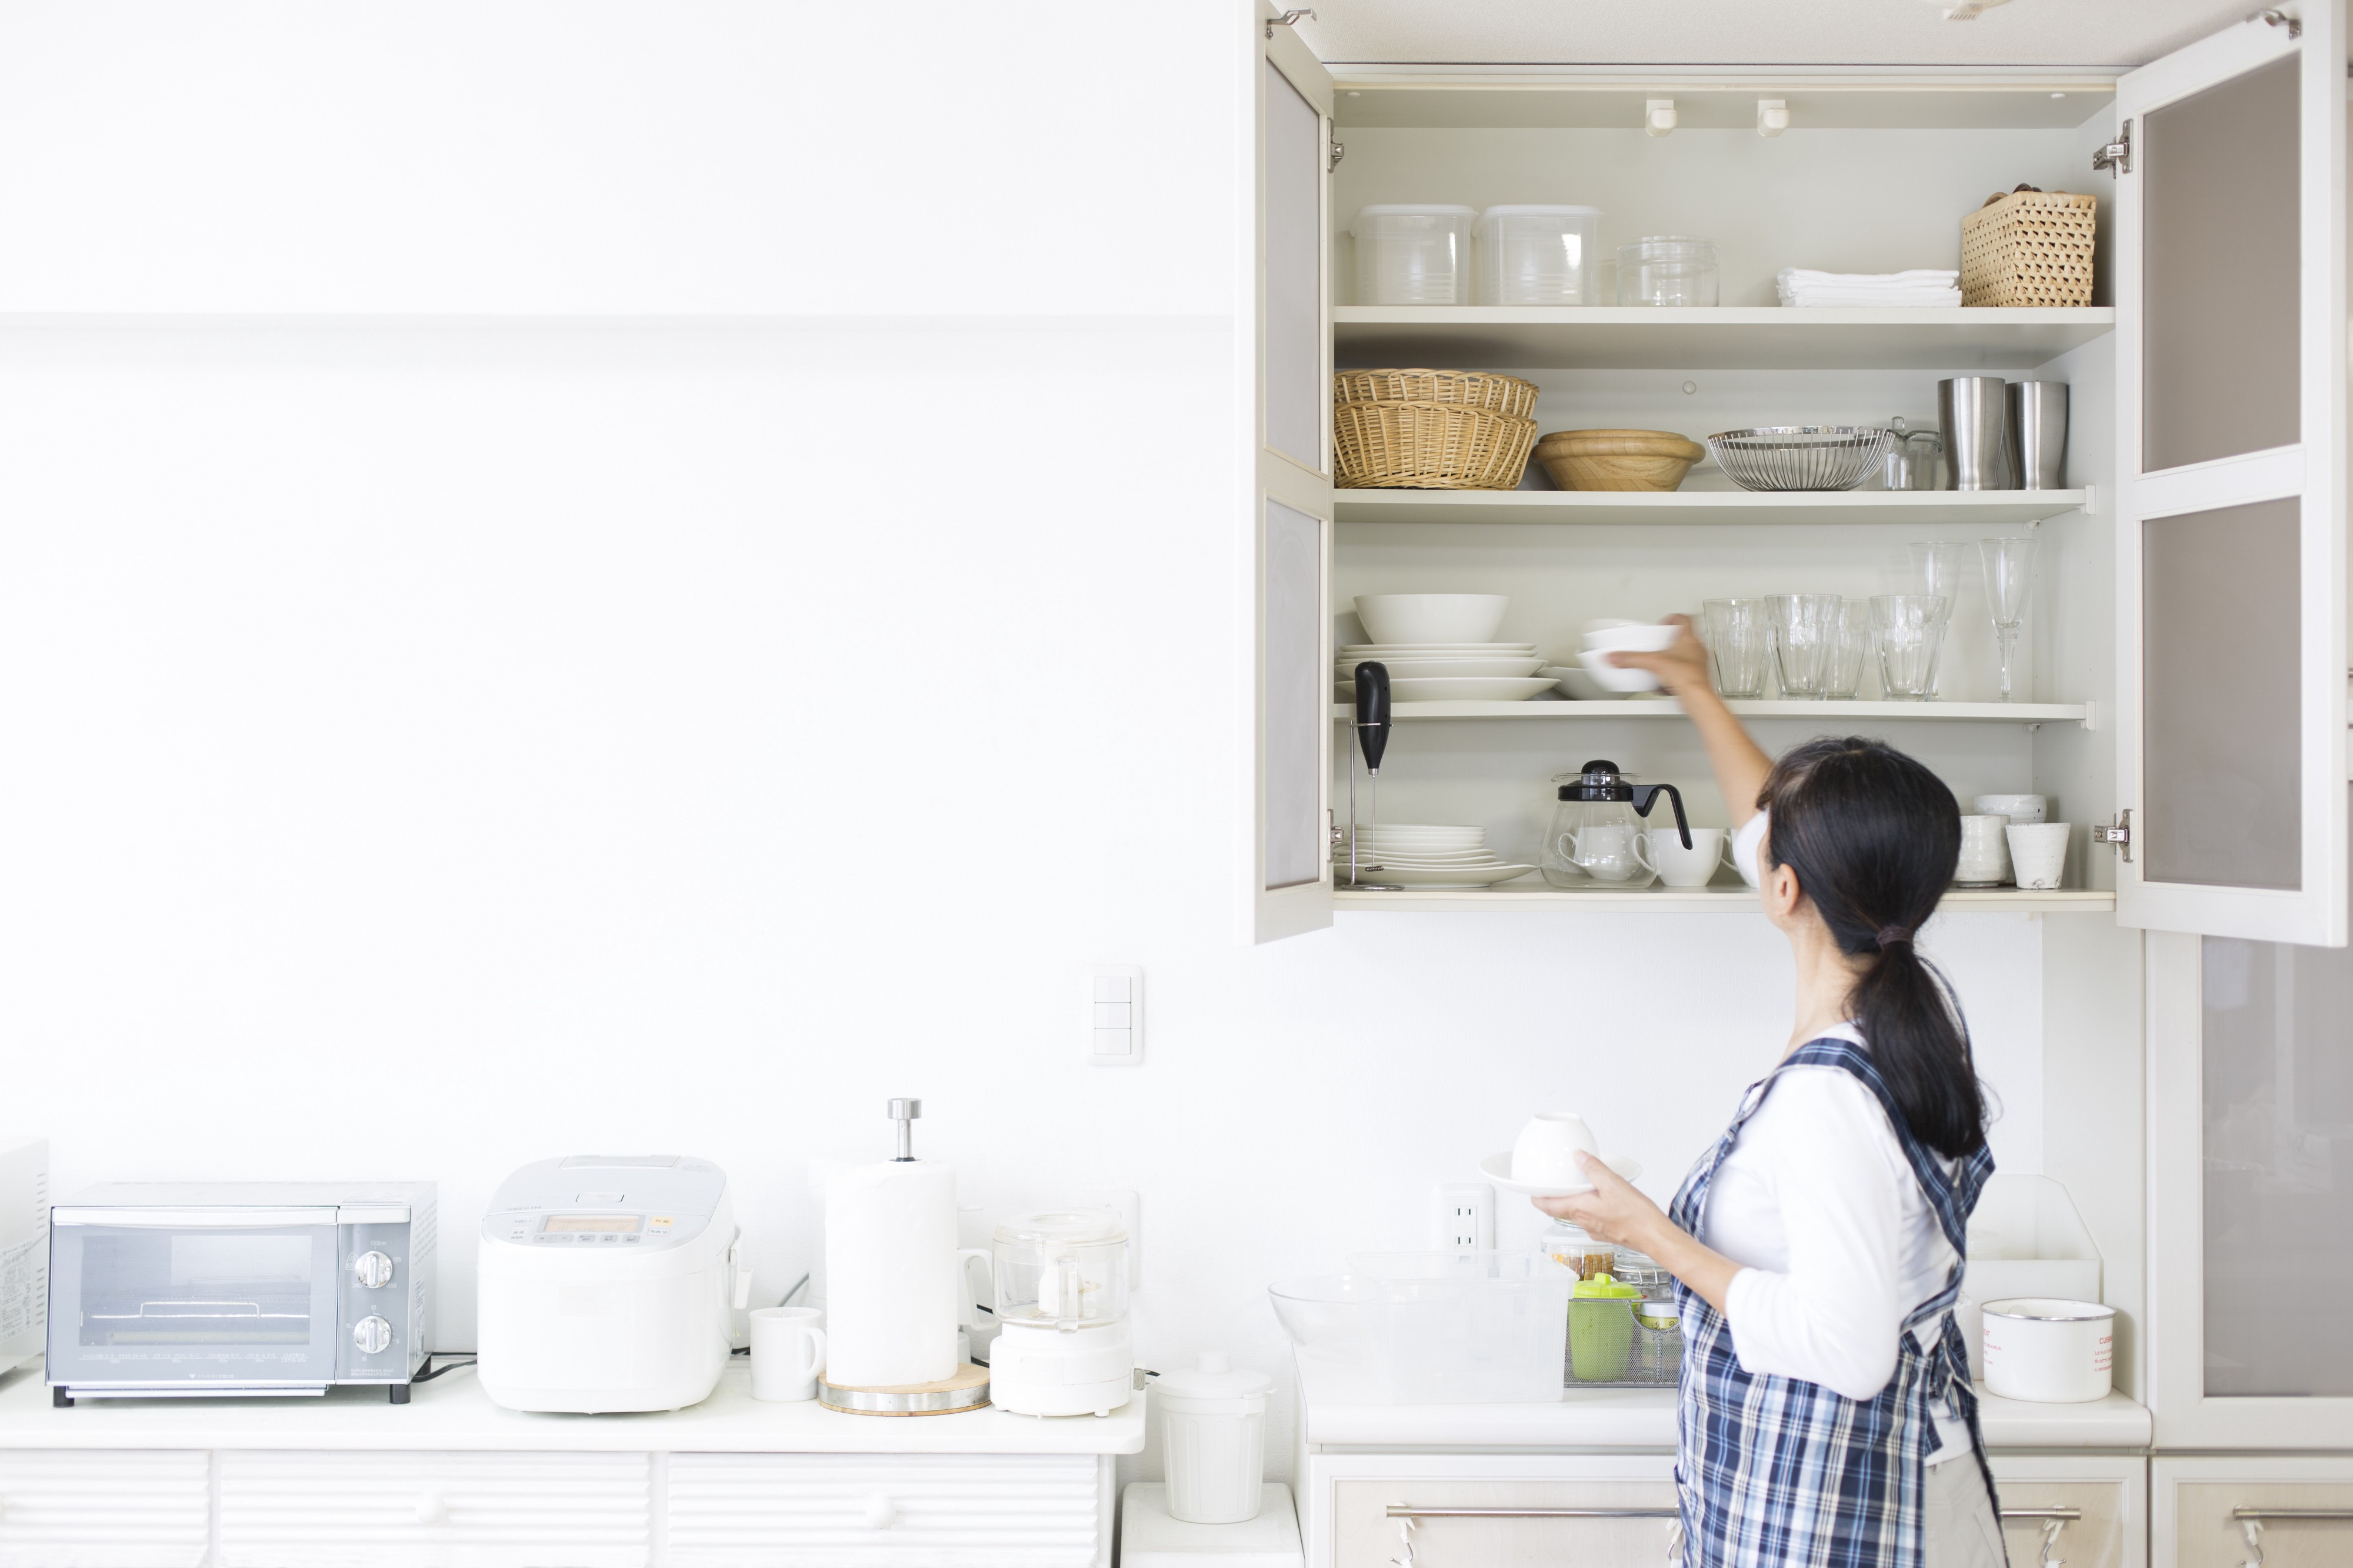 Rules of Renovation Reviews: 4 Tips to Organize Your Kitchen